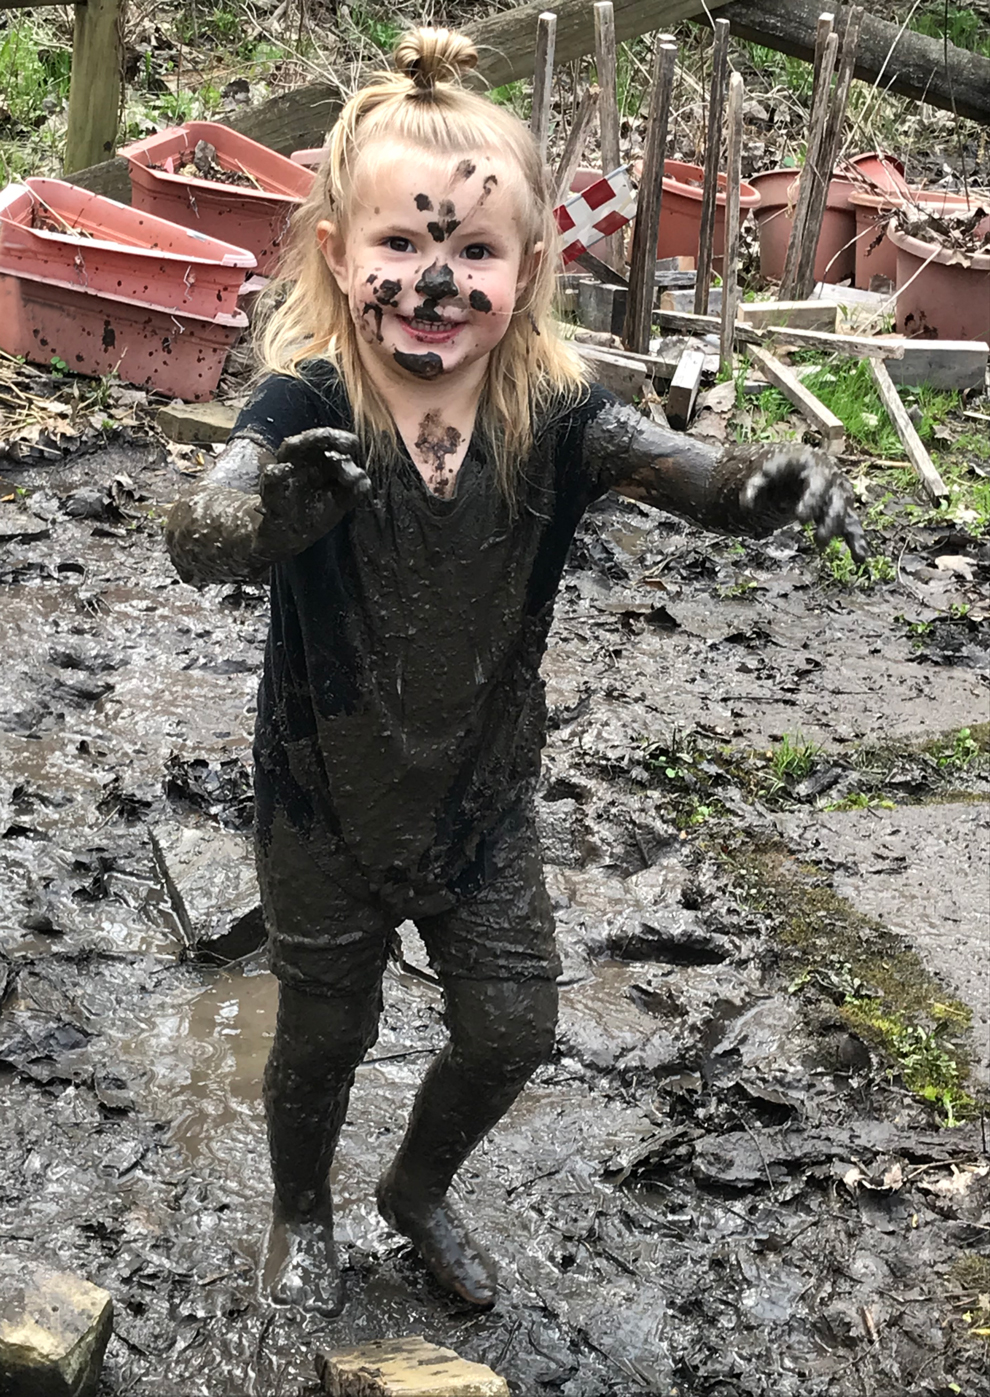 A young girl covered in mud at the Blendon Woods Natural Play Area